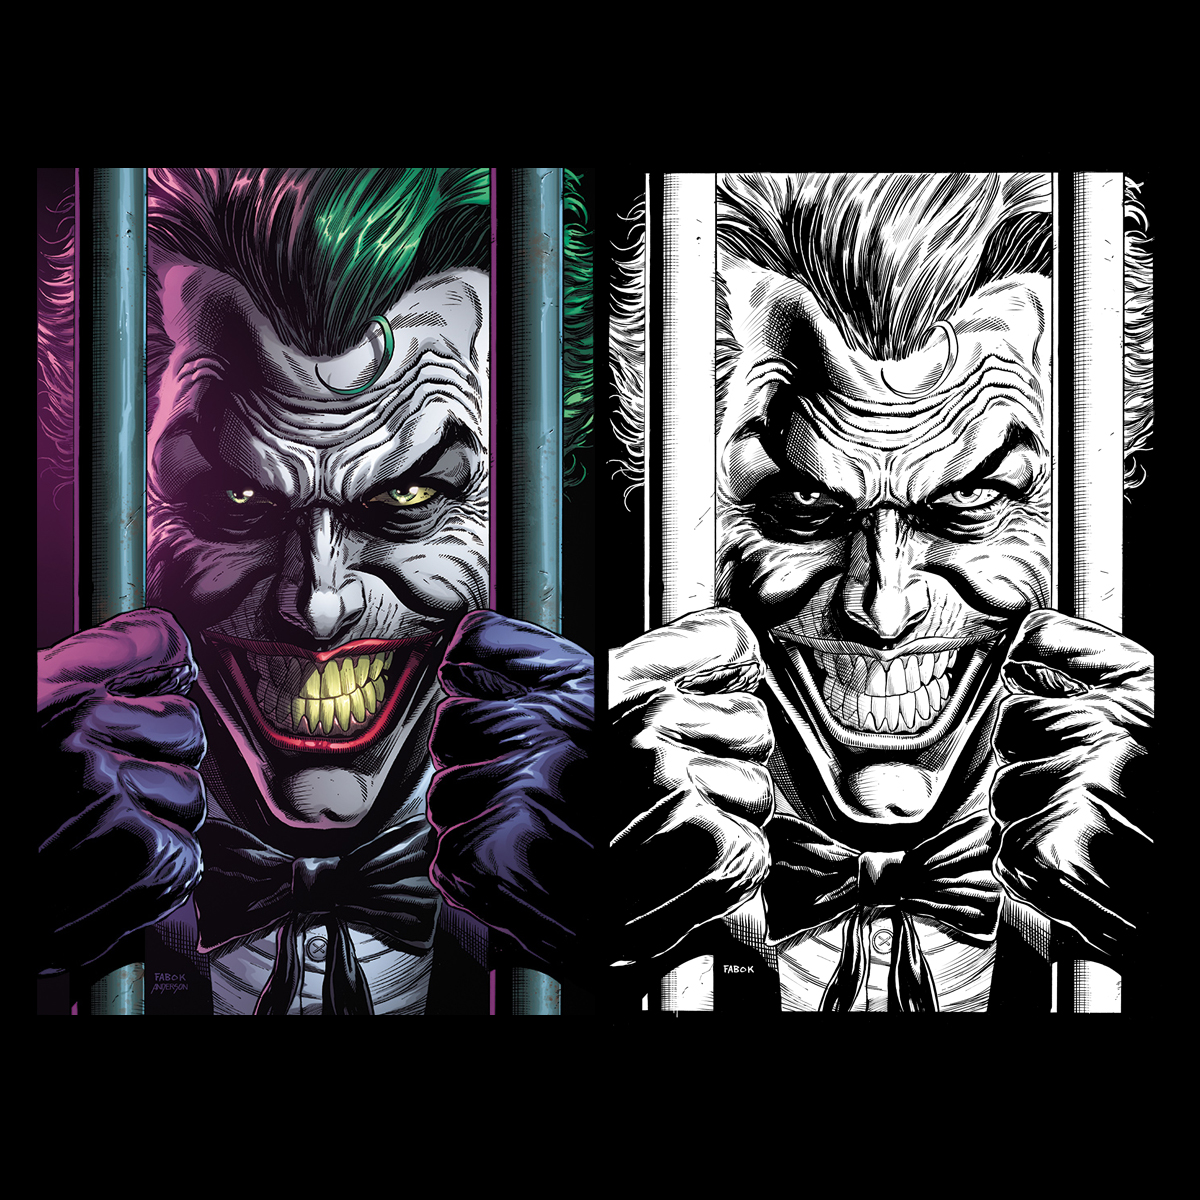 A look at the Joker Behind Bars cover for #Batman: Three Jokers!  You still have a little more time to pre-order the book but the date is fast approaching when orders will be closed.  Call your local shop today and support them! colors by the great @bdanderson13